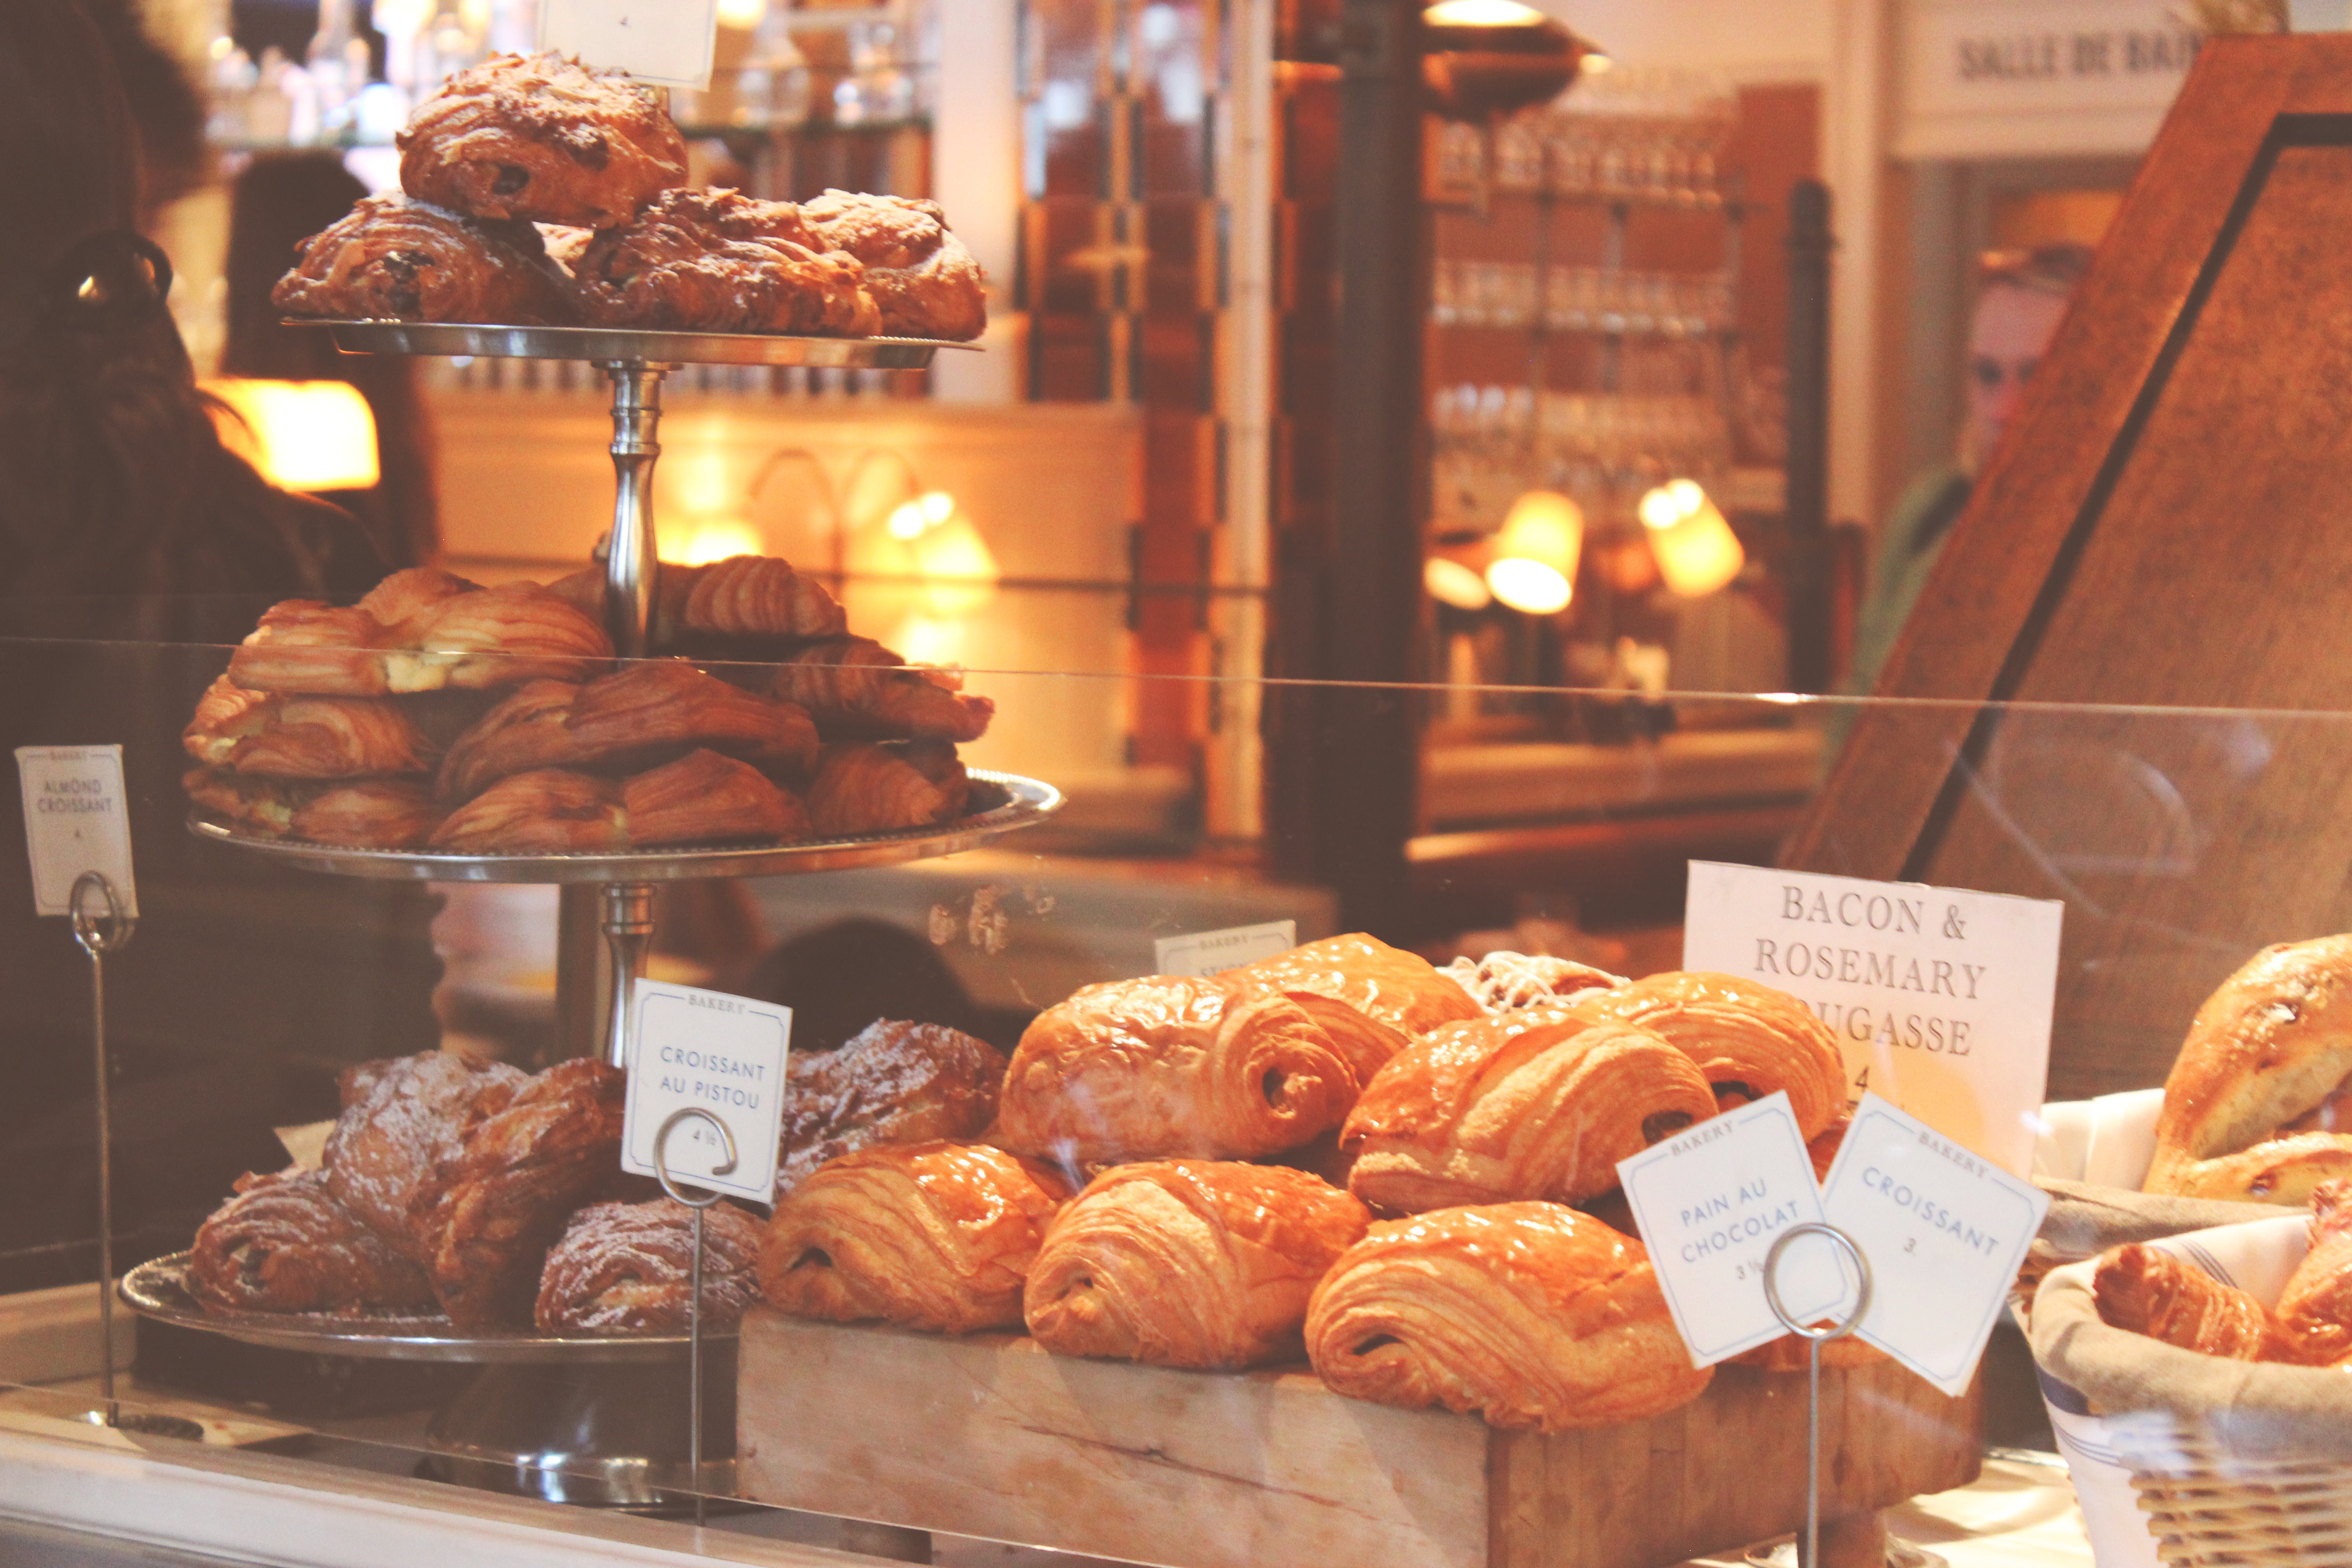 tatte bakery - Gluten-Friendly Options